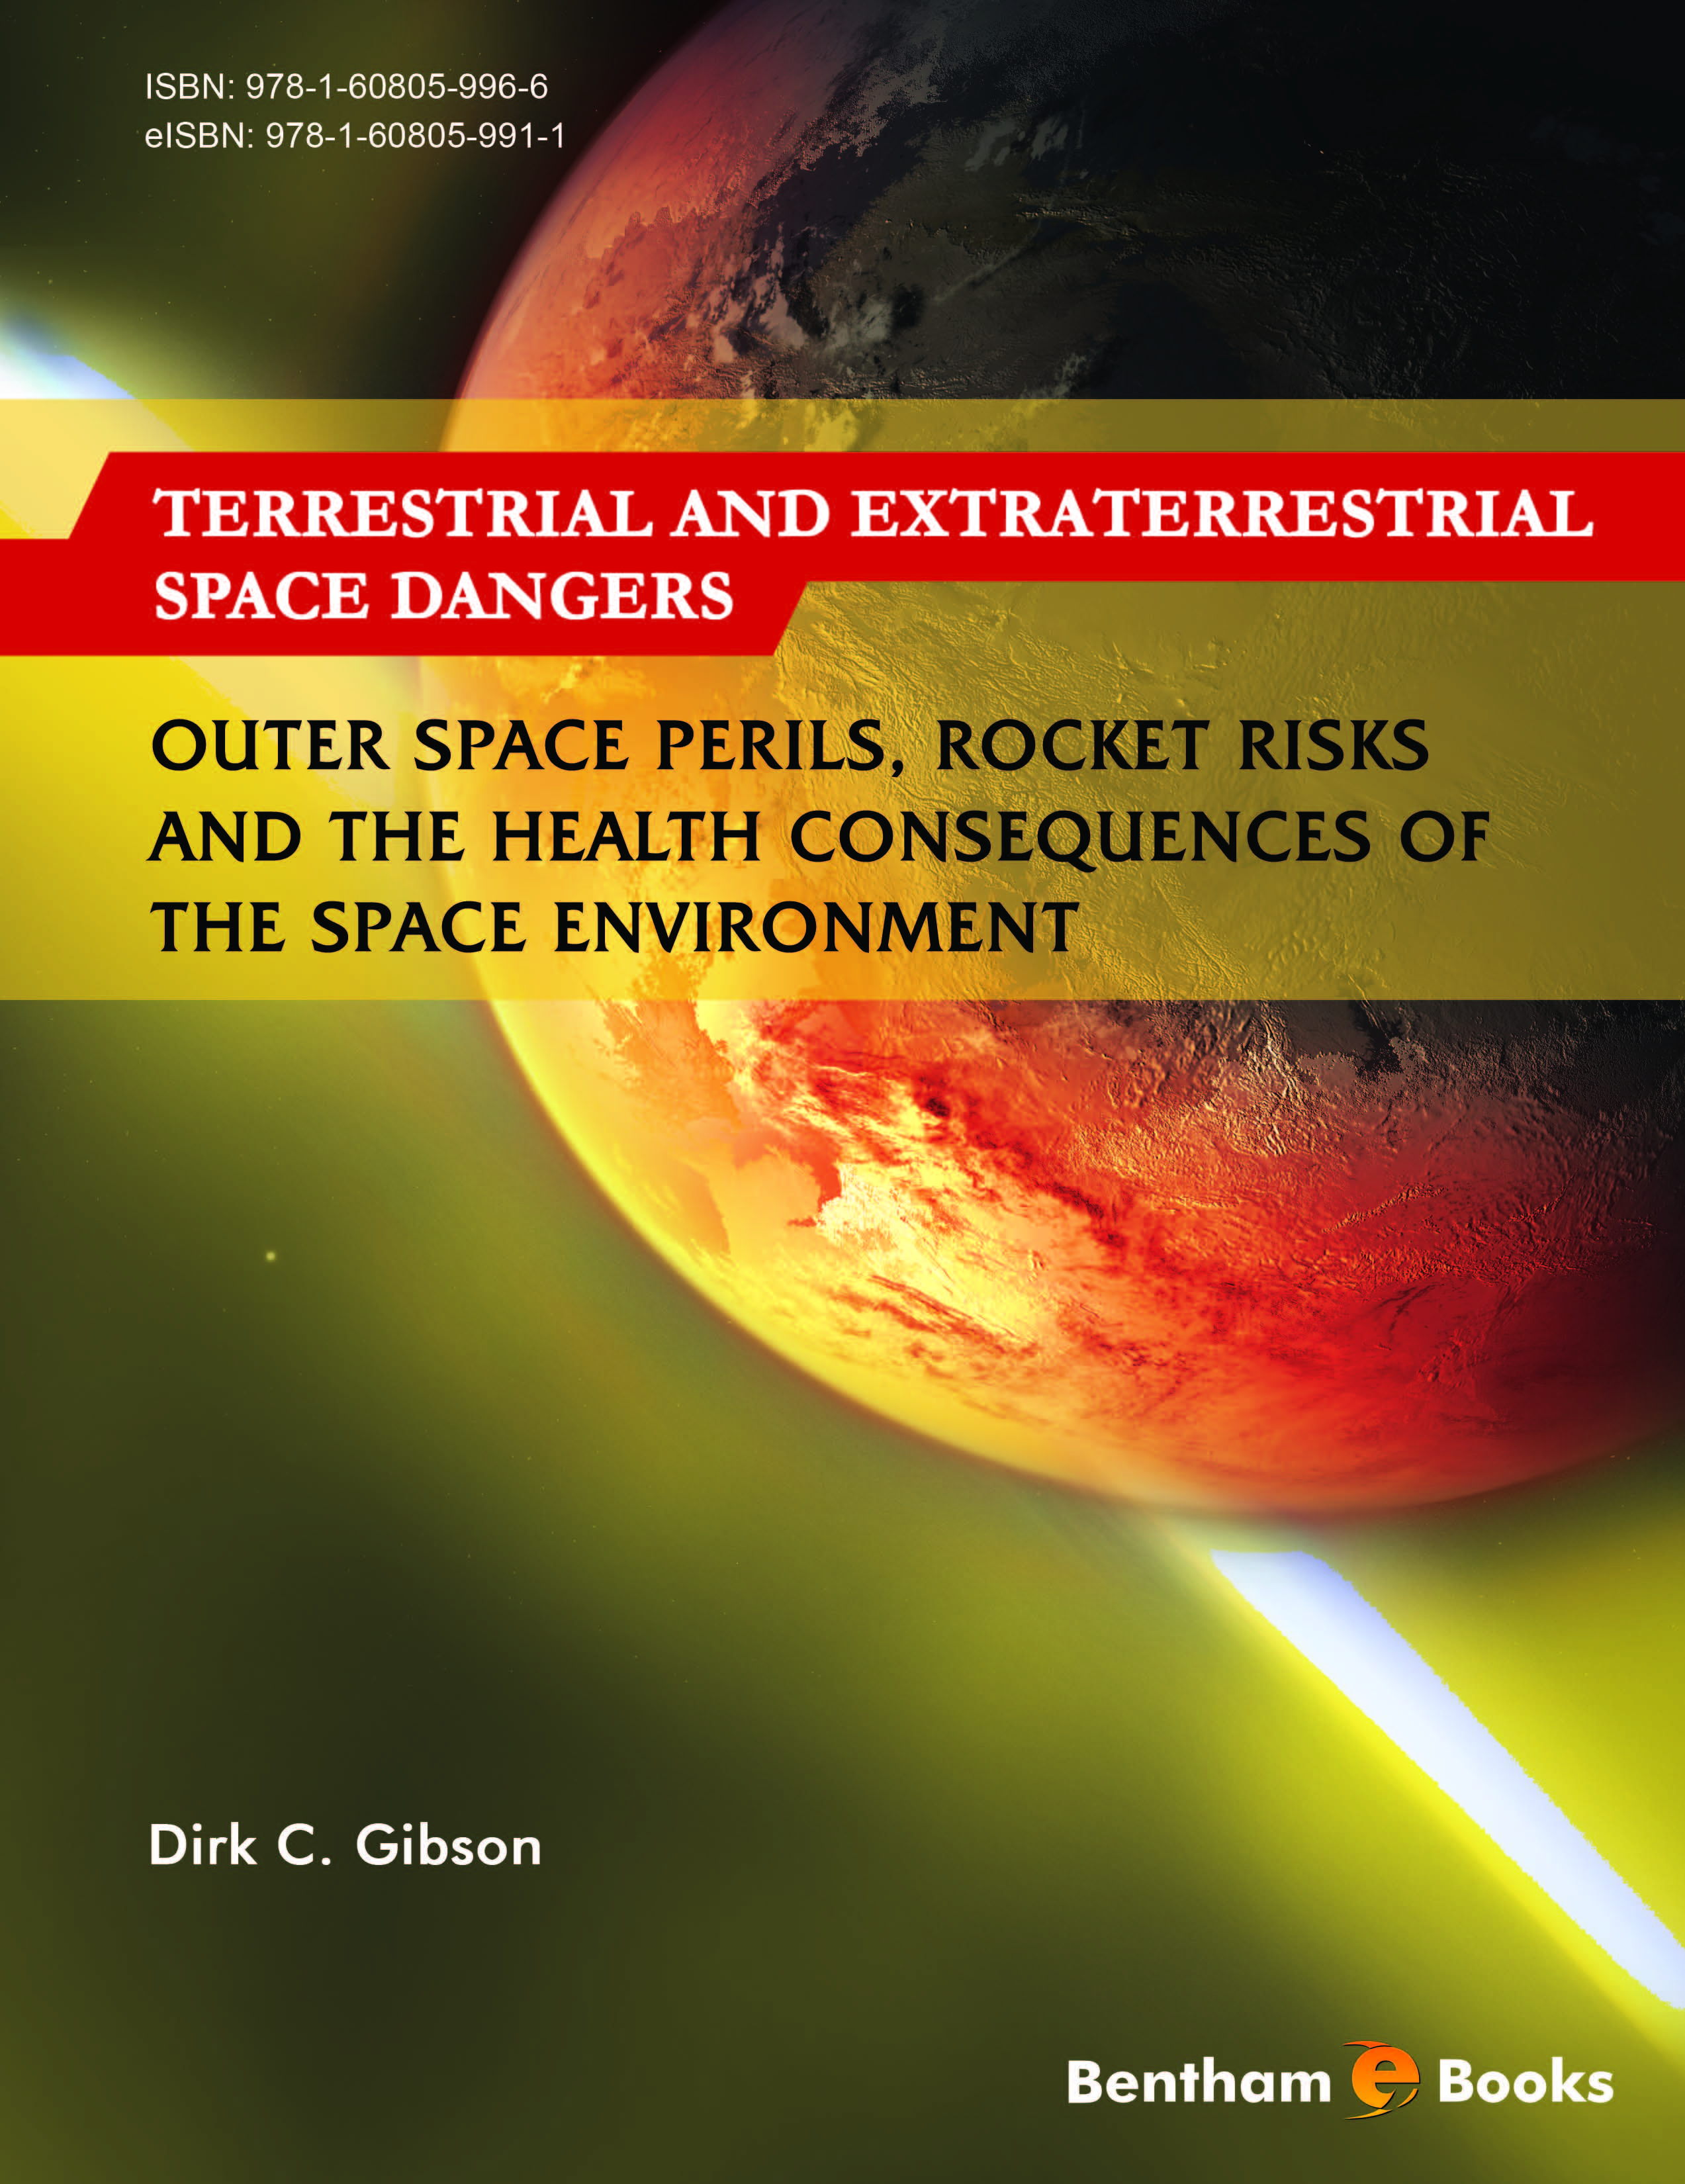 Terrestrial and Extraterrestrial Space Dangers: Outer Space Perils, Rocket Risks and the Health Consequences of the Space Environment